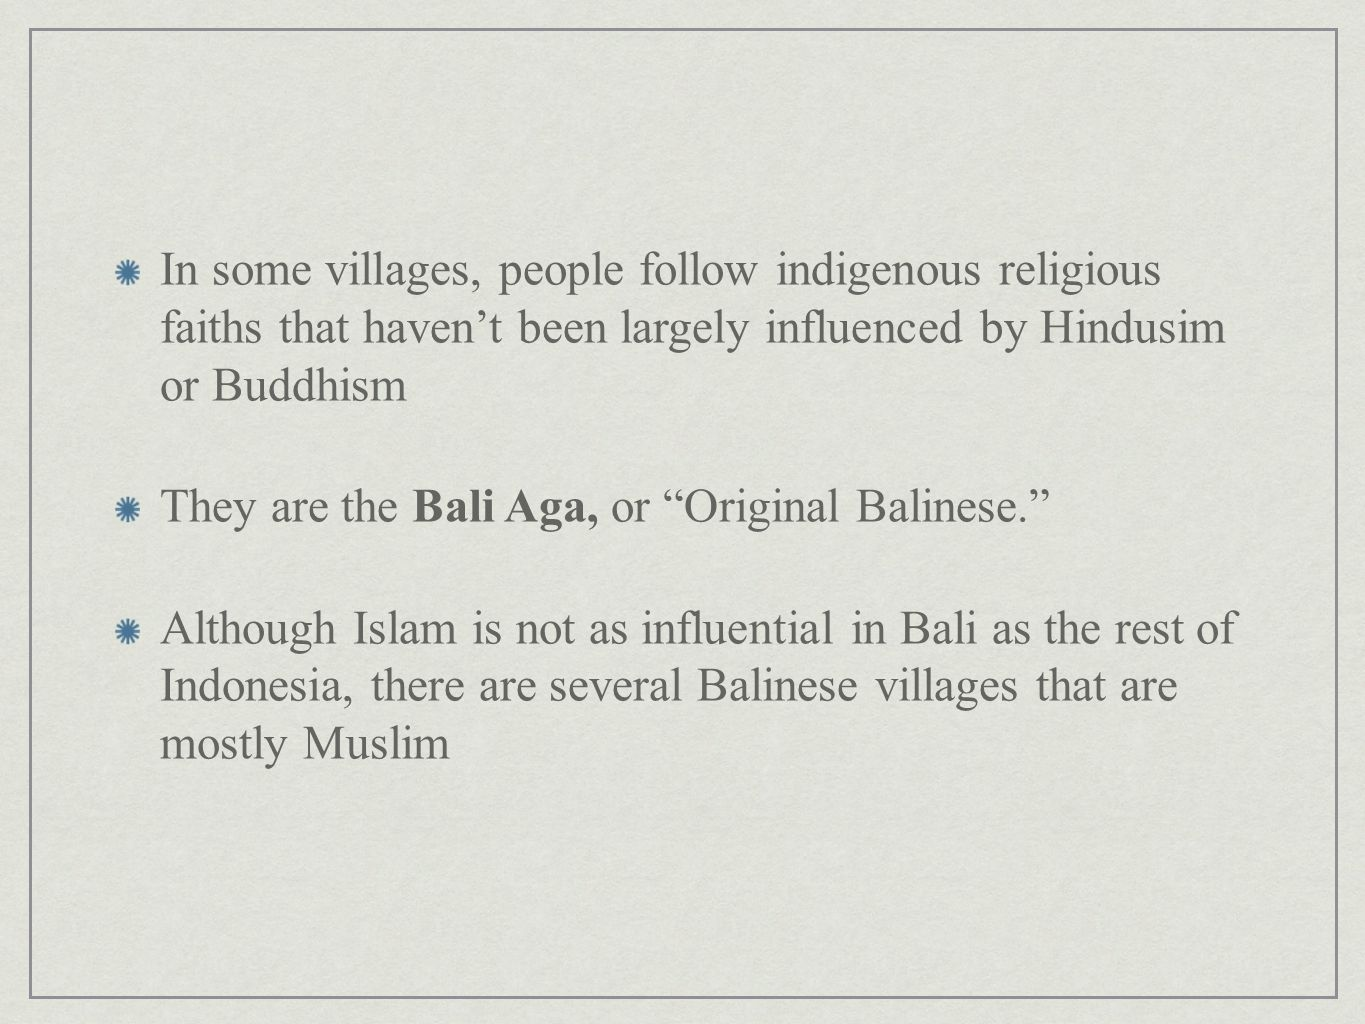 In some villages, people follow indigenous religious faiths that haven't been largely influenced by Hindusim or Buddhism